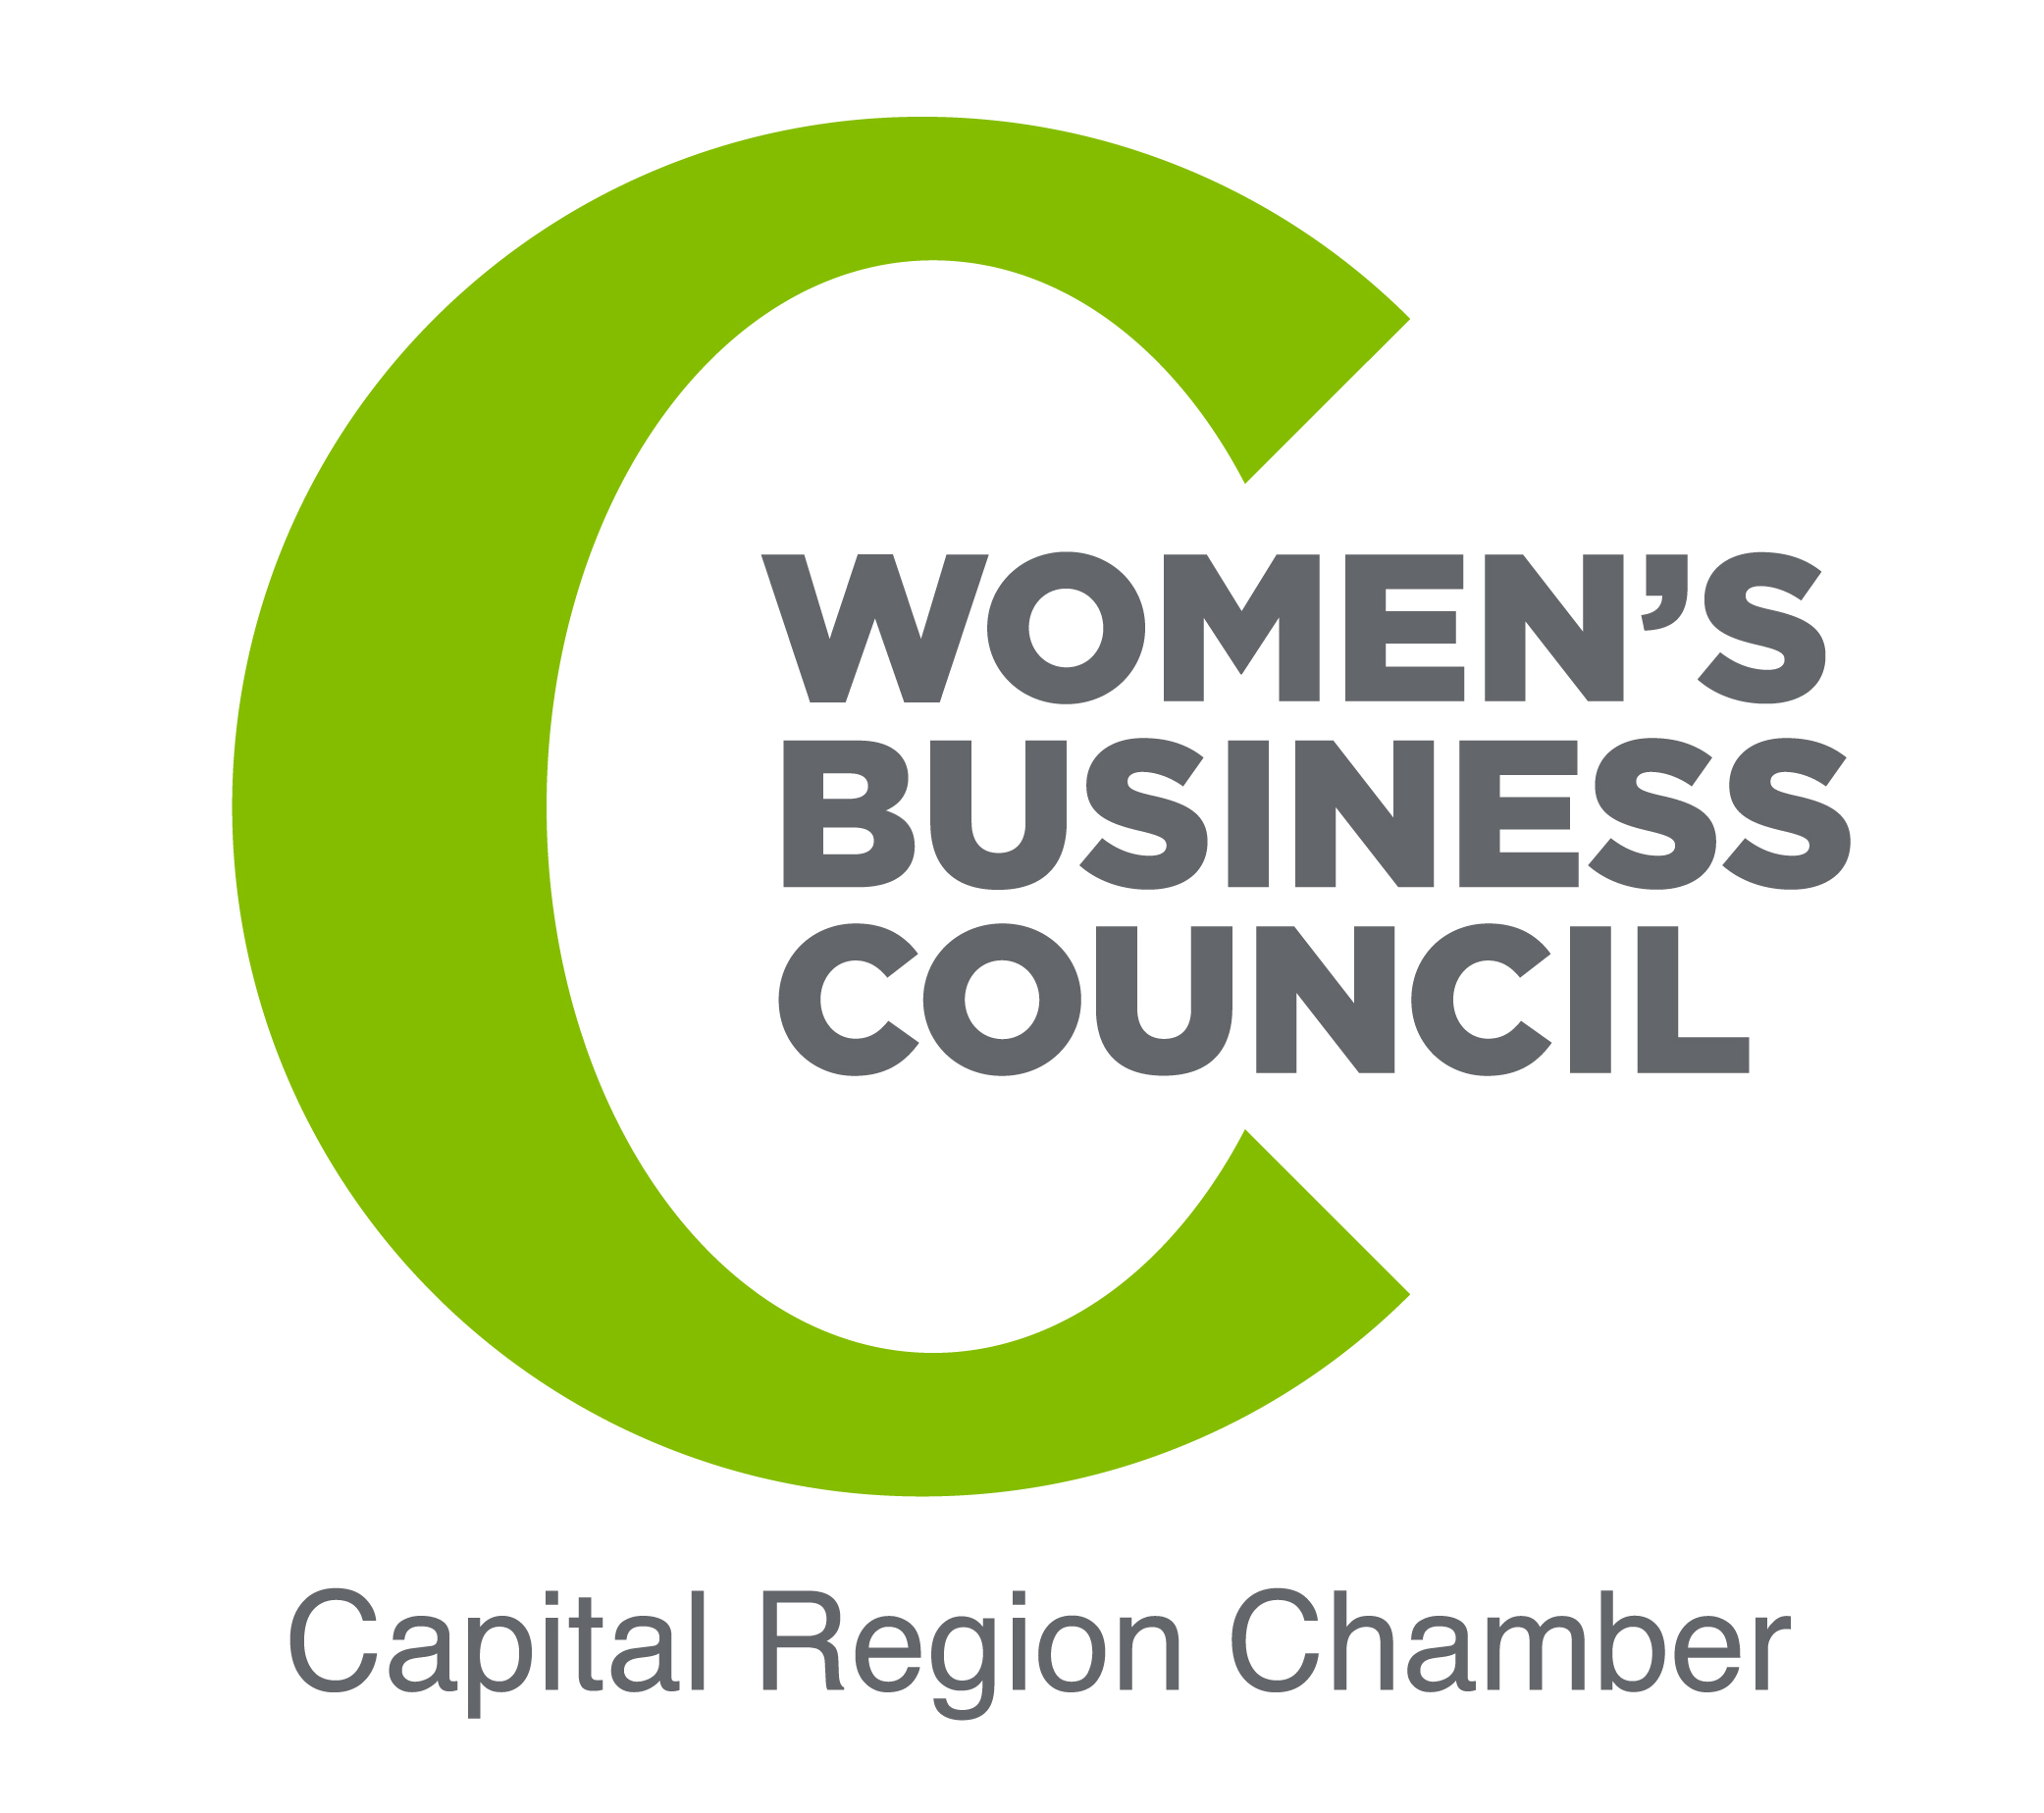 Women's Business Council | Capital Region Chamber